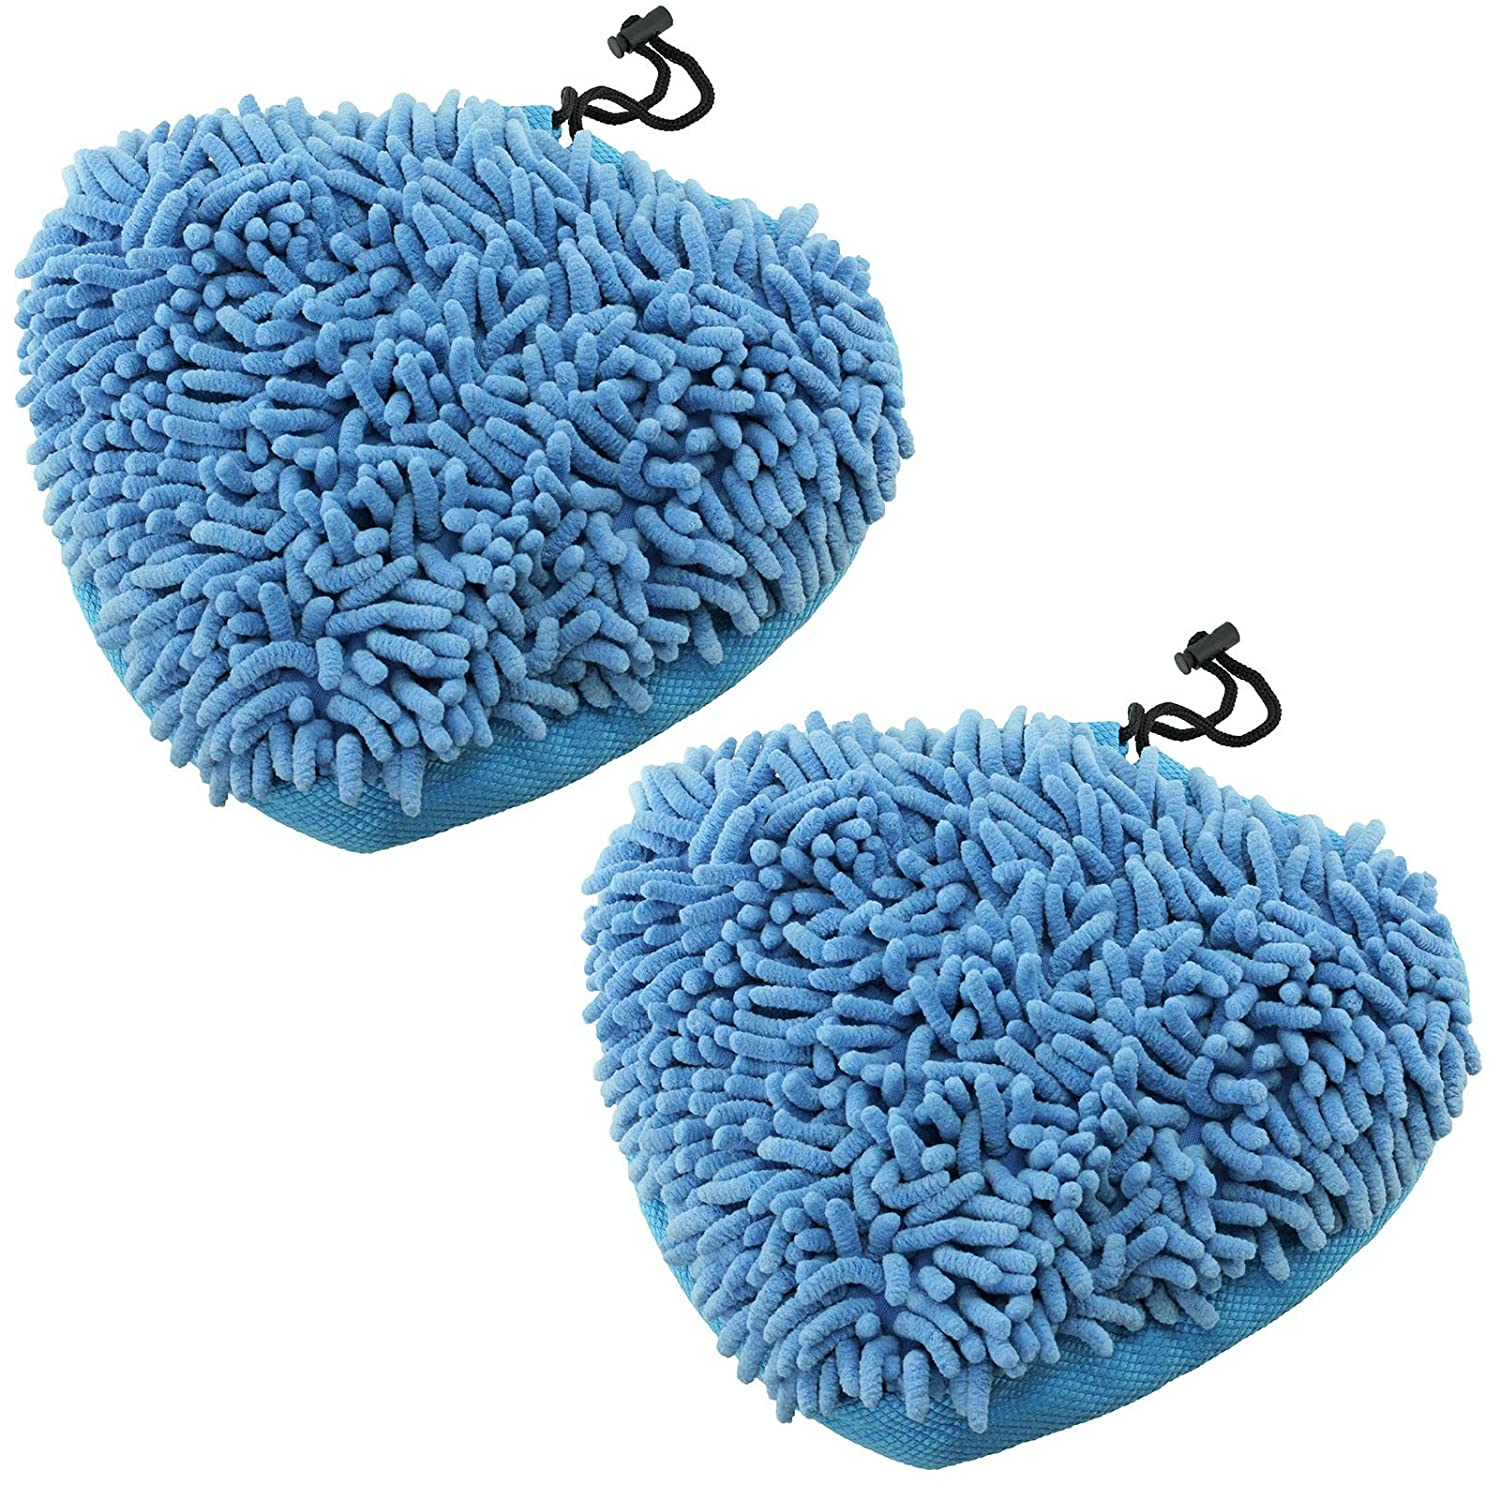 SPARES2GO Coral Microfibre Cloth Cover Pads for Vax S2 S2S S2ST S2U S2C S2S-1 S3S Steam Cleaner Mop (Pack of 2)